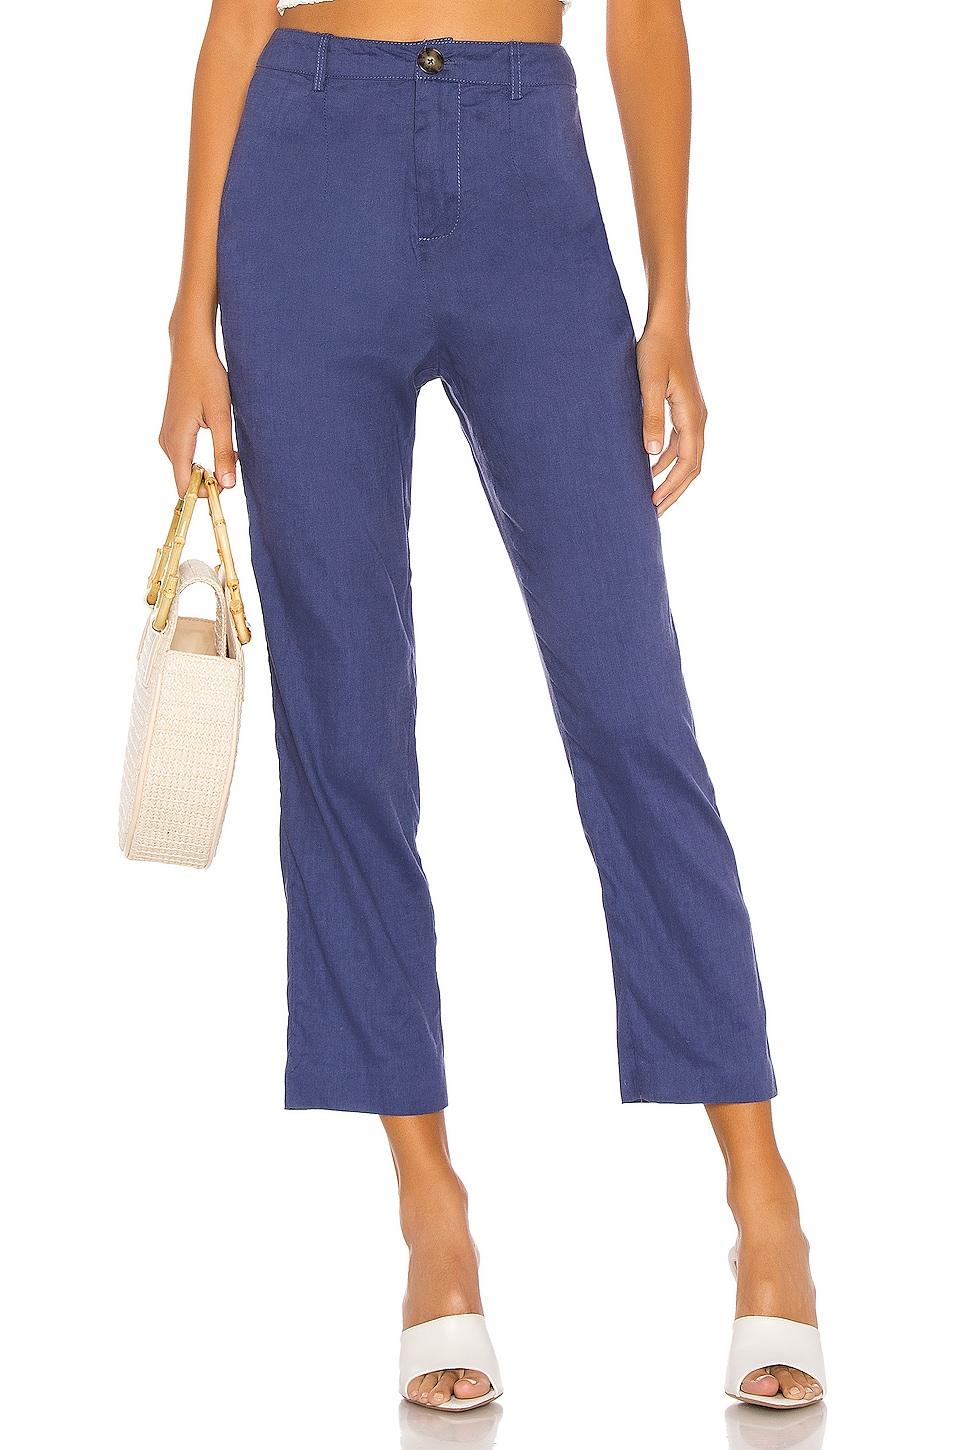 L'Academie The Charley Pant in Midnight Blue